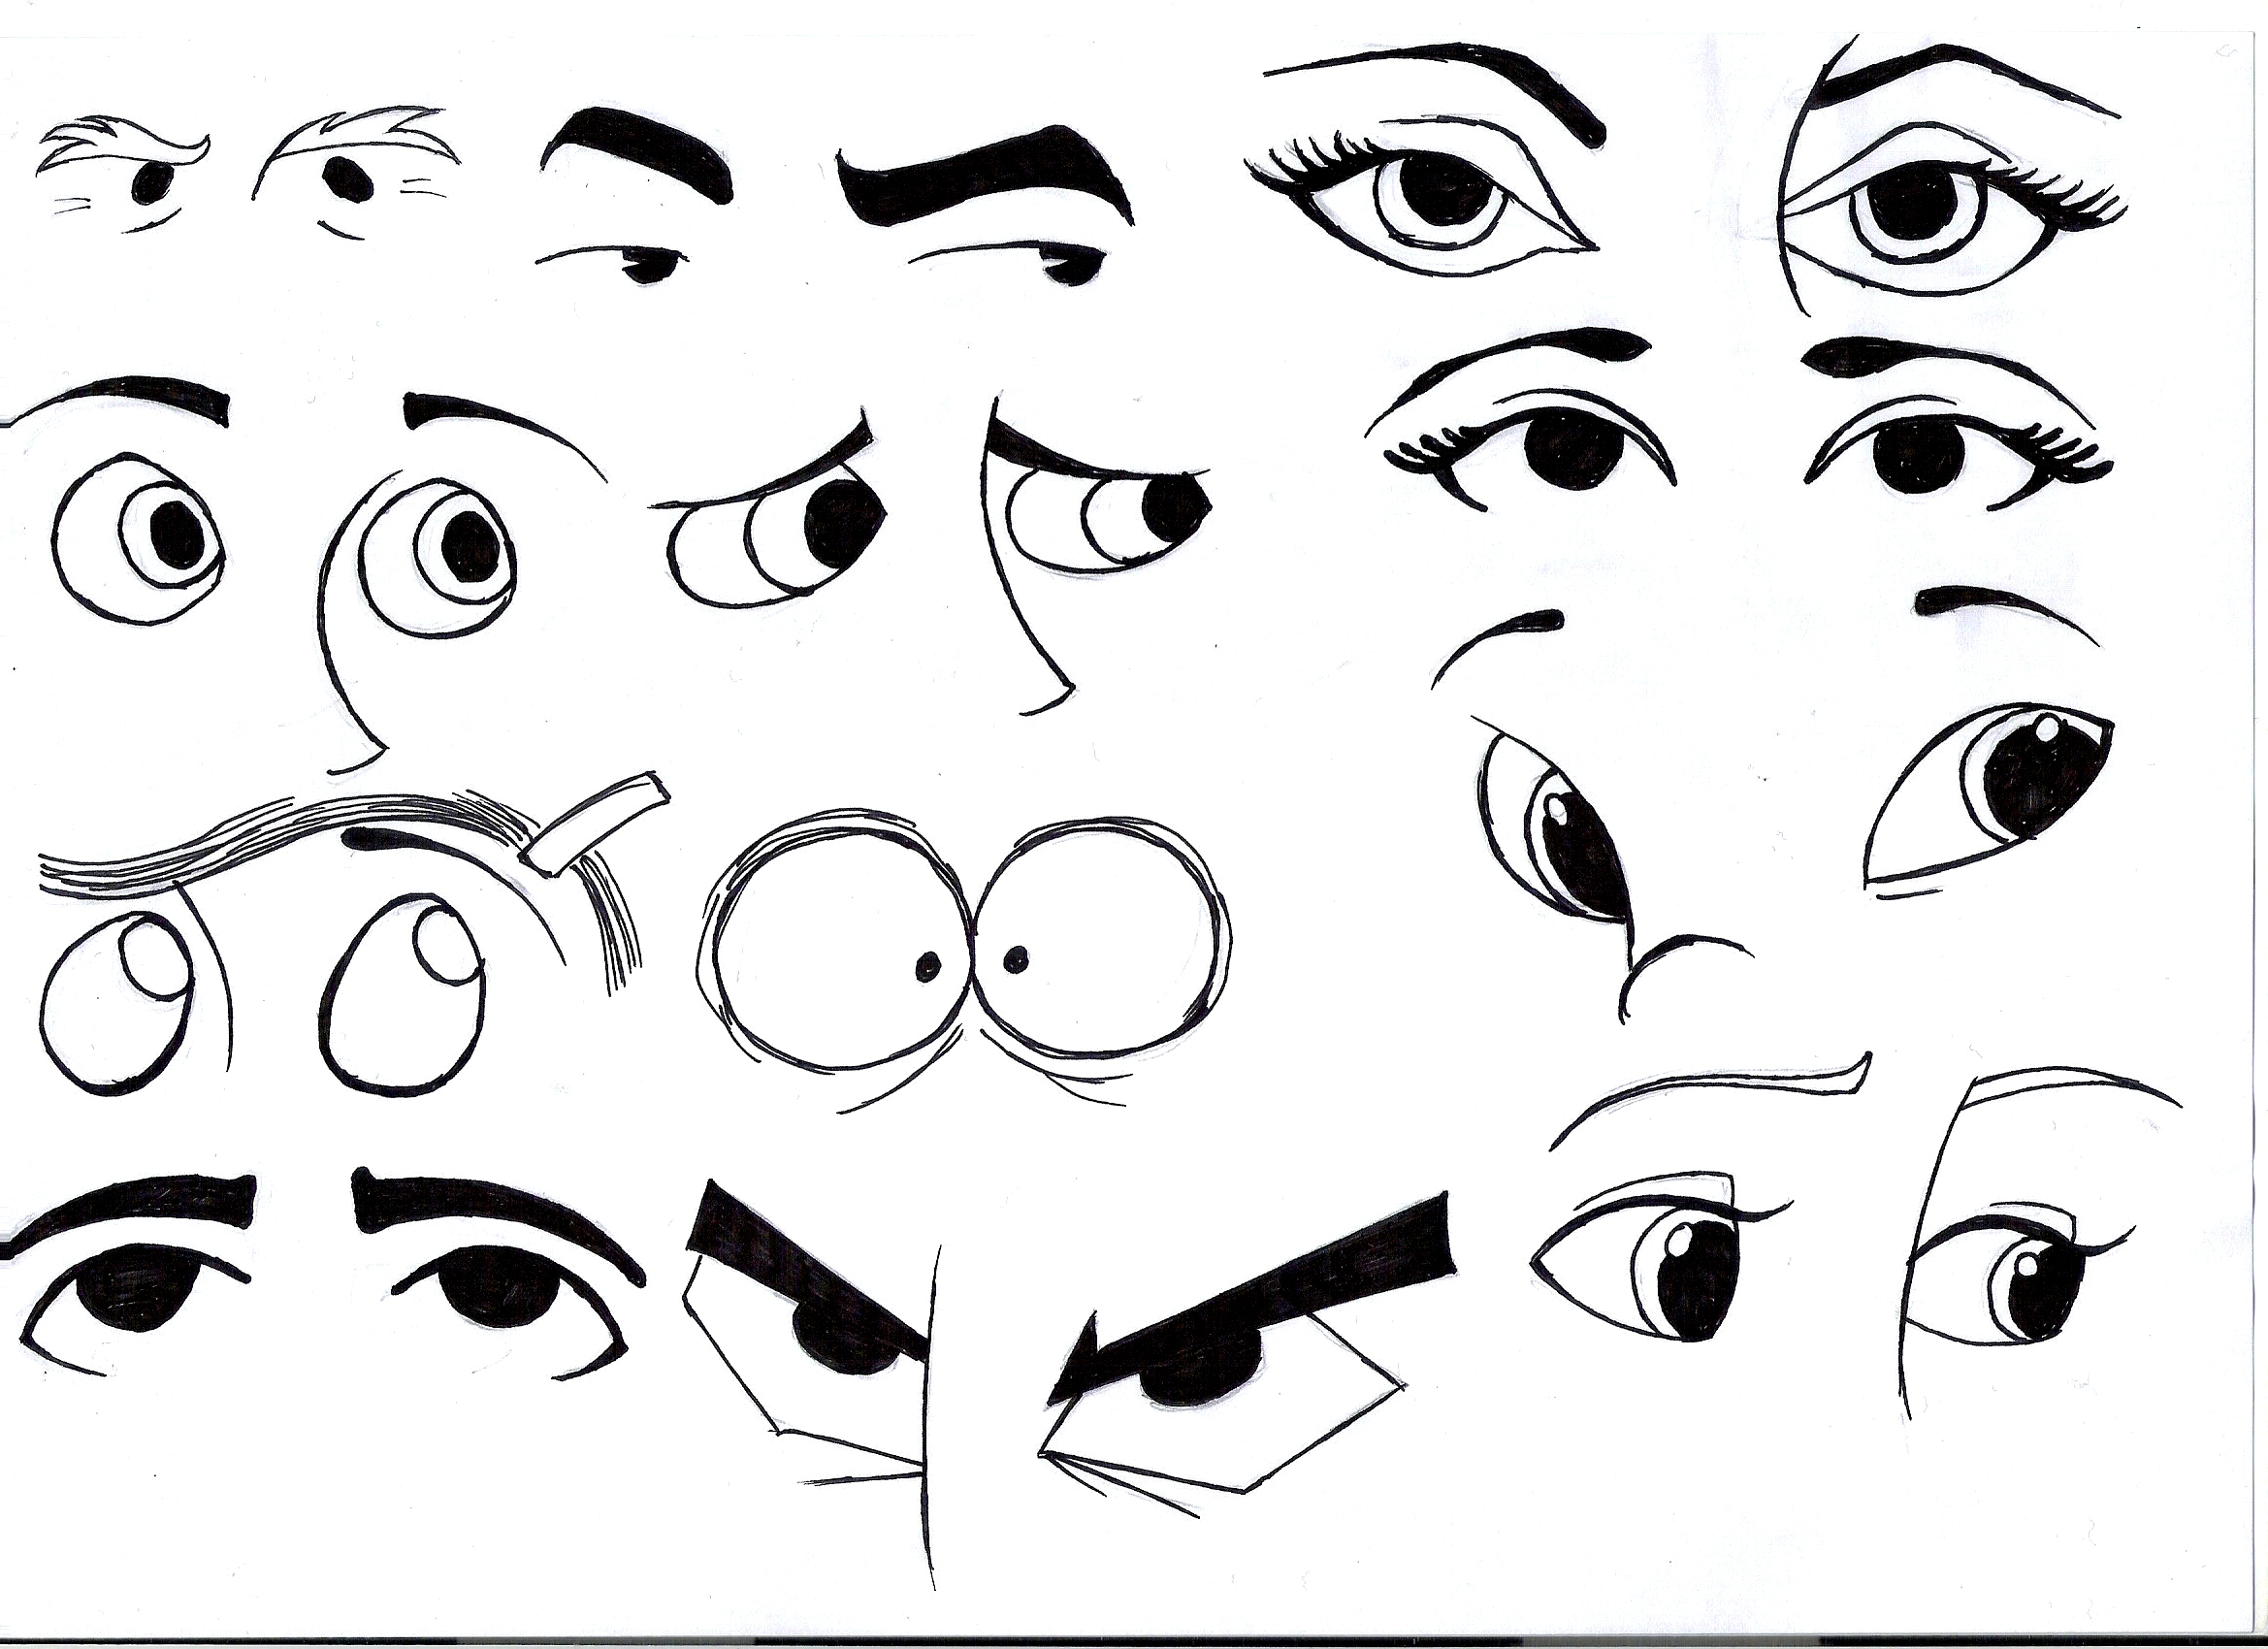 It's just an image of Punchy Different Types Of Eyes Drawing